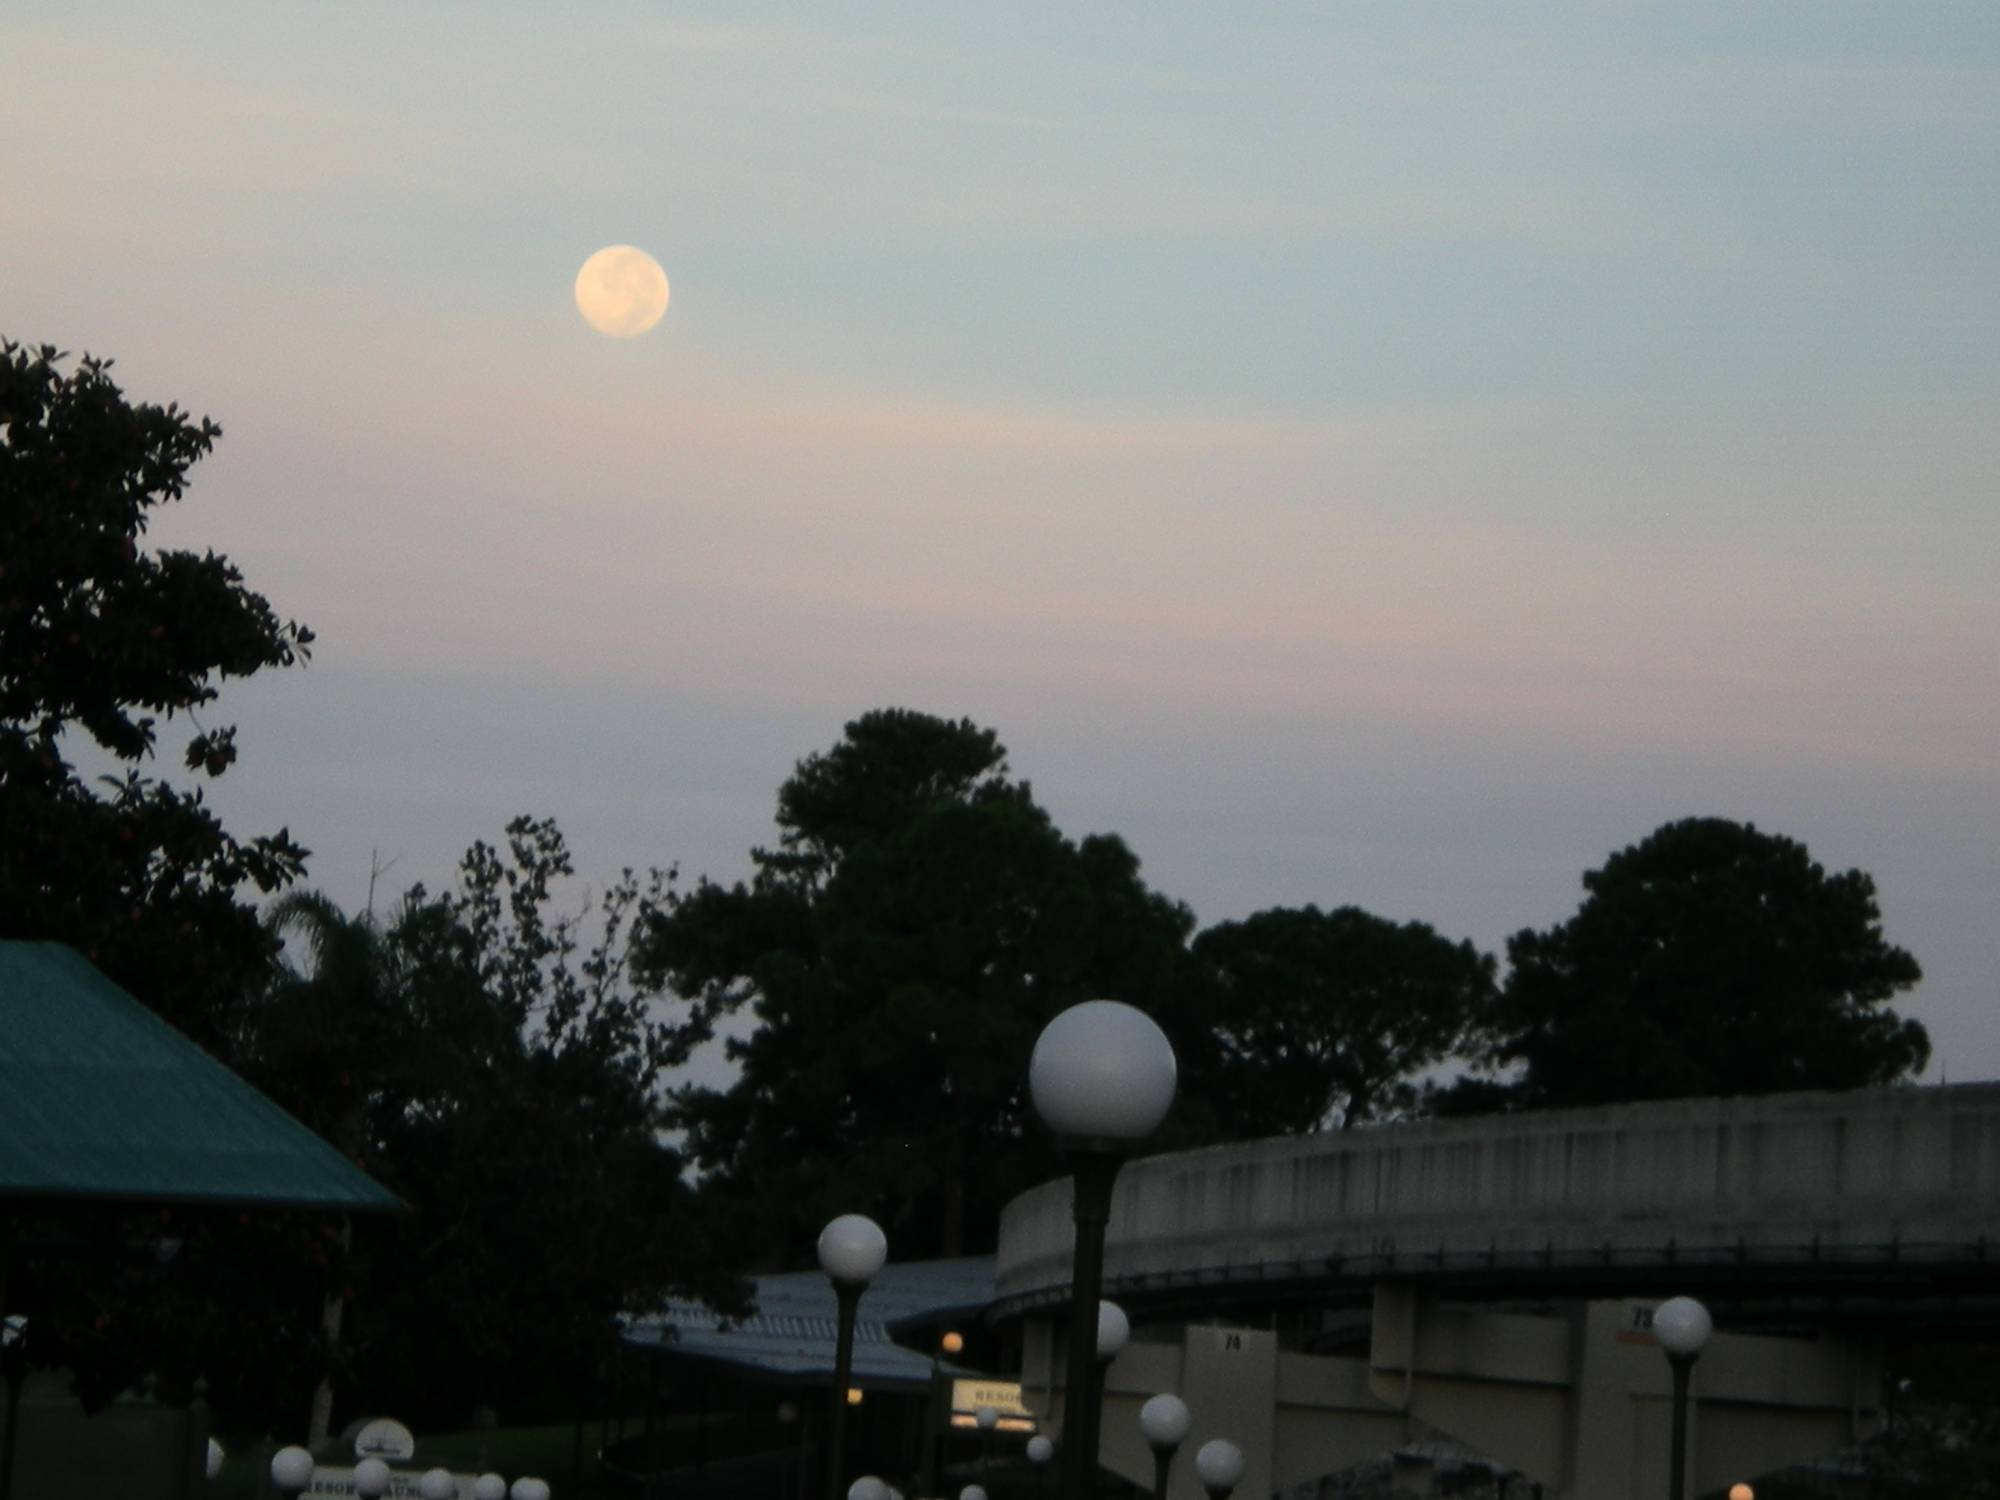 Moon over monorail